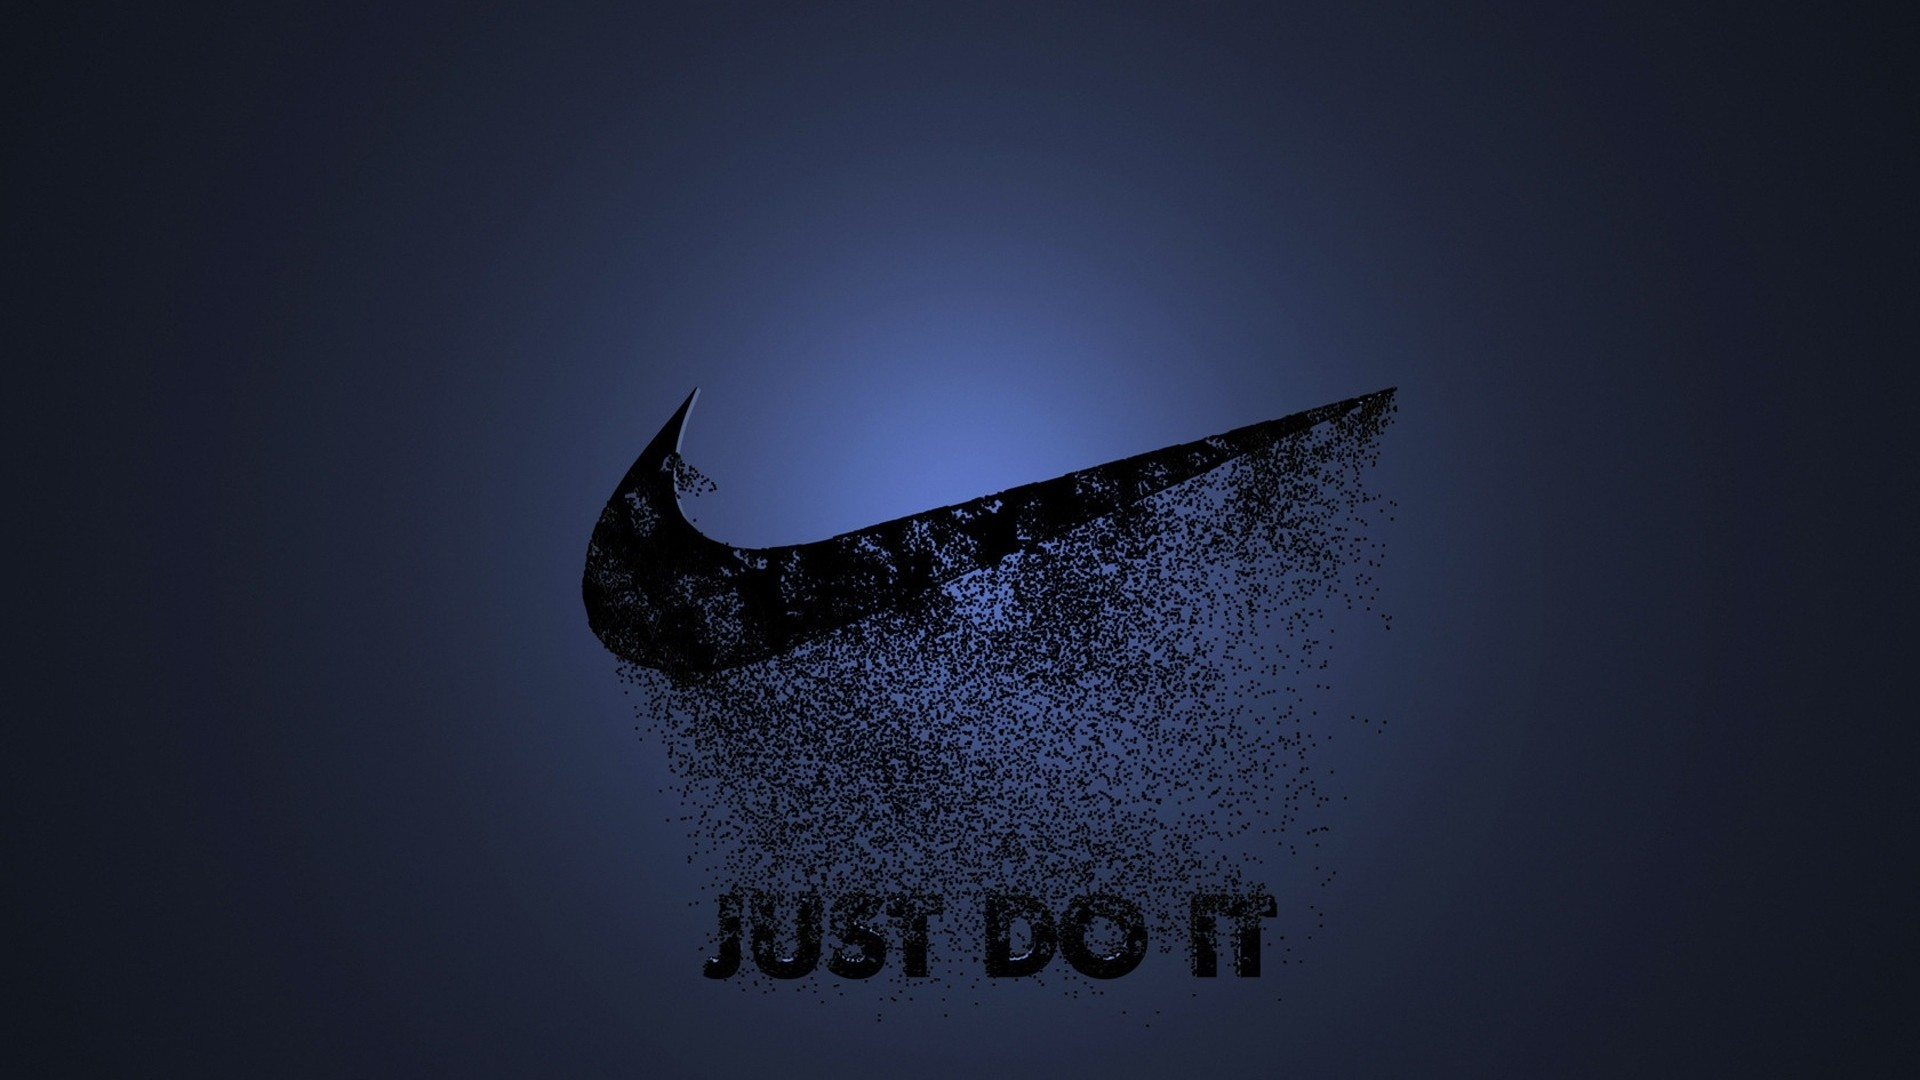 Nike Wallpaper HD 1080p (75+ images).